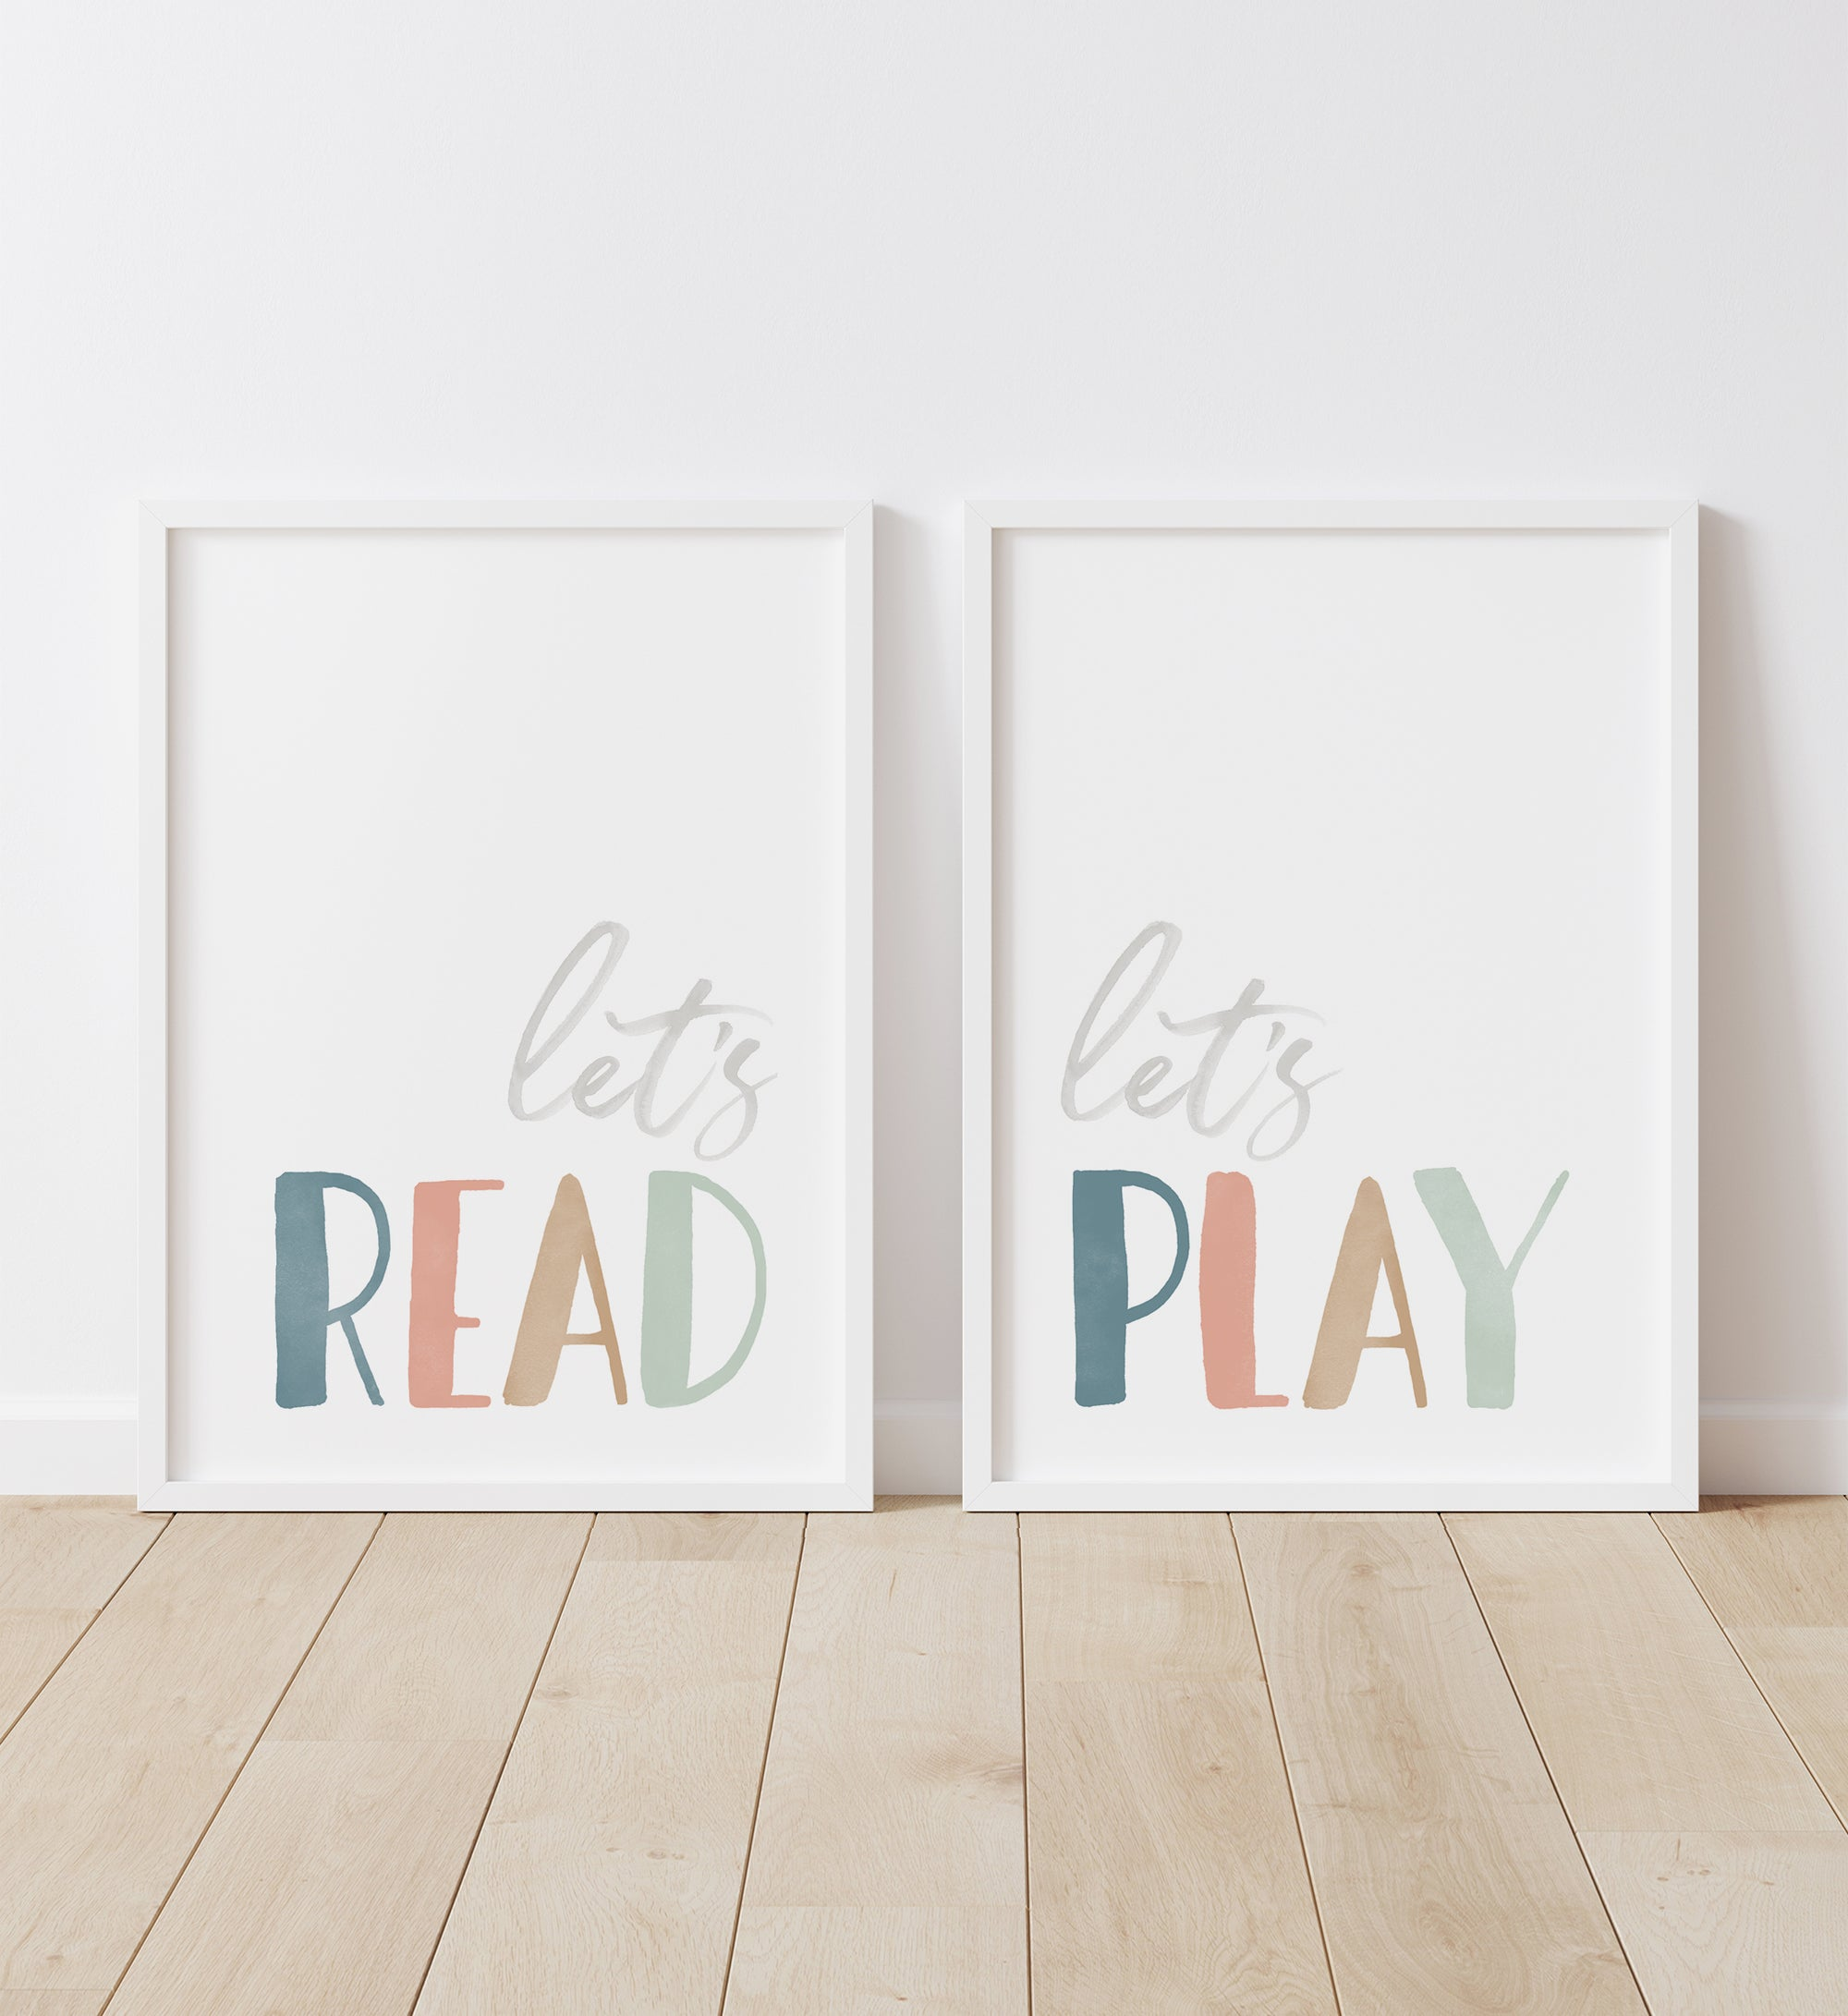 Let's Read, Let's Play - Muted